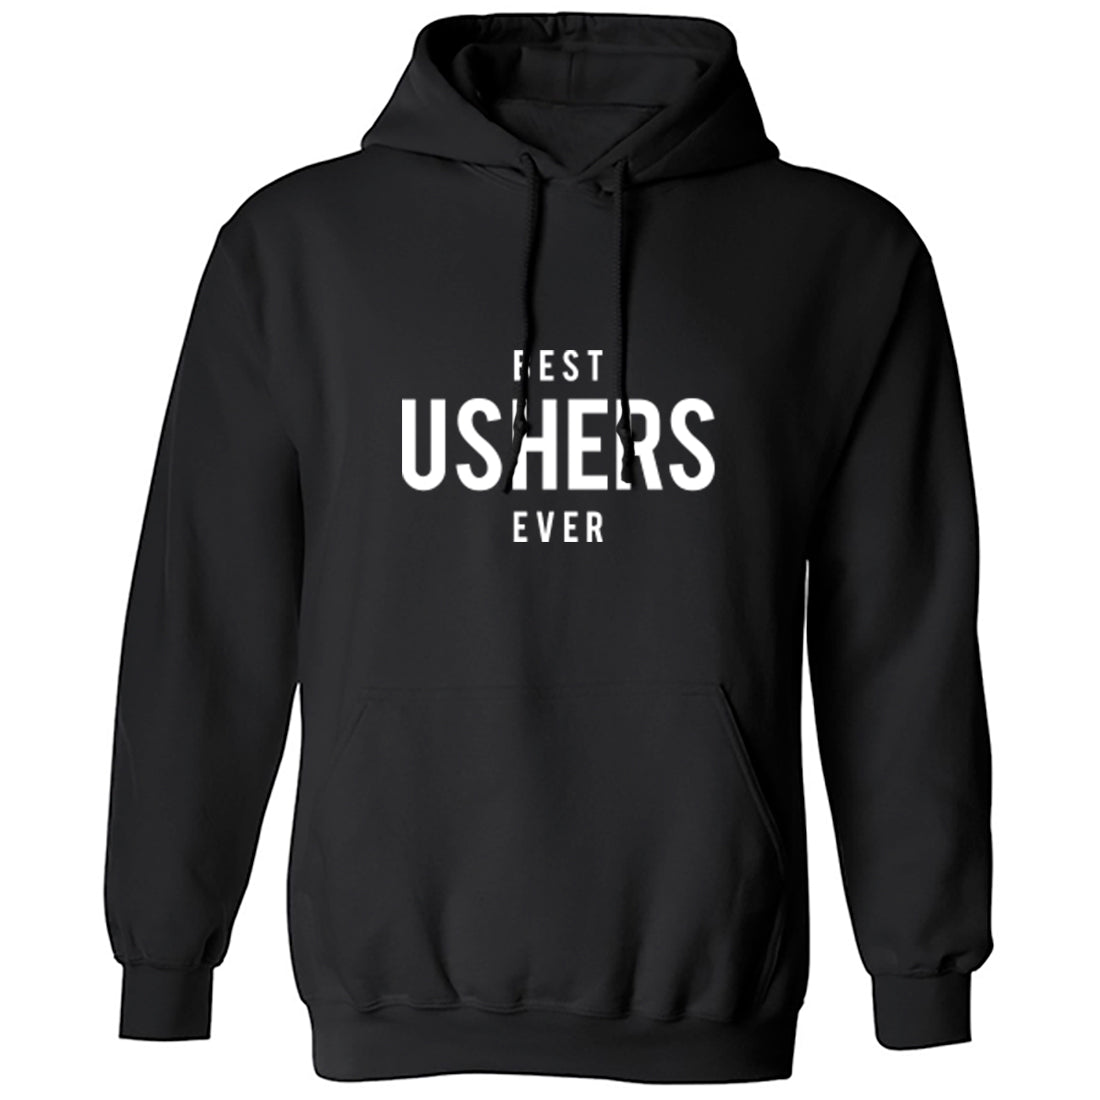 Best Ushers Ever Unisex Hoodie K1490 - Illustrated Identity Ltd.